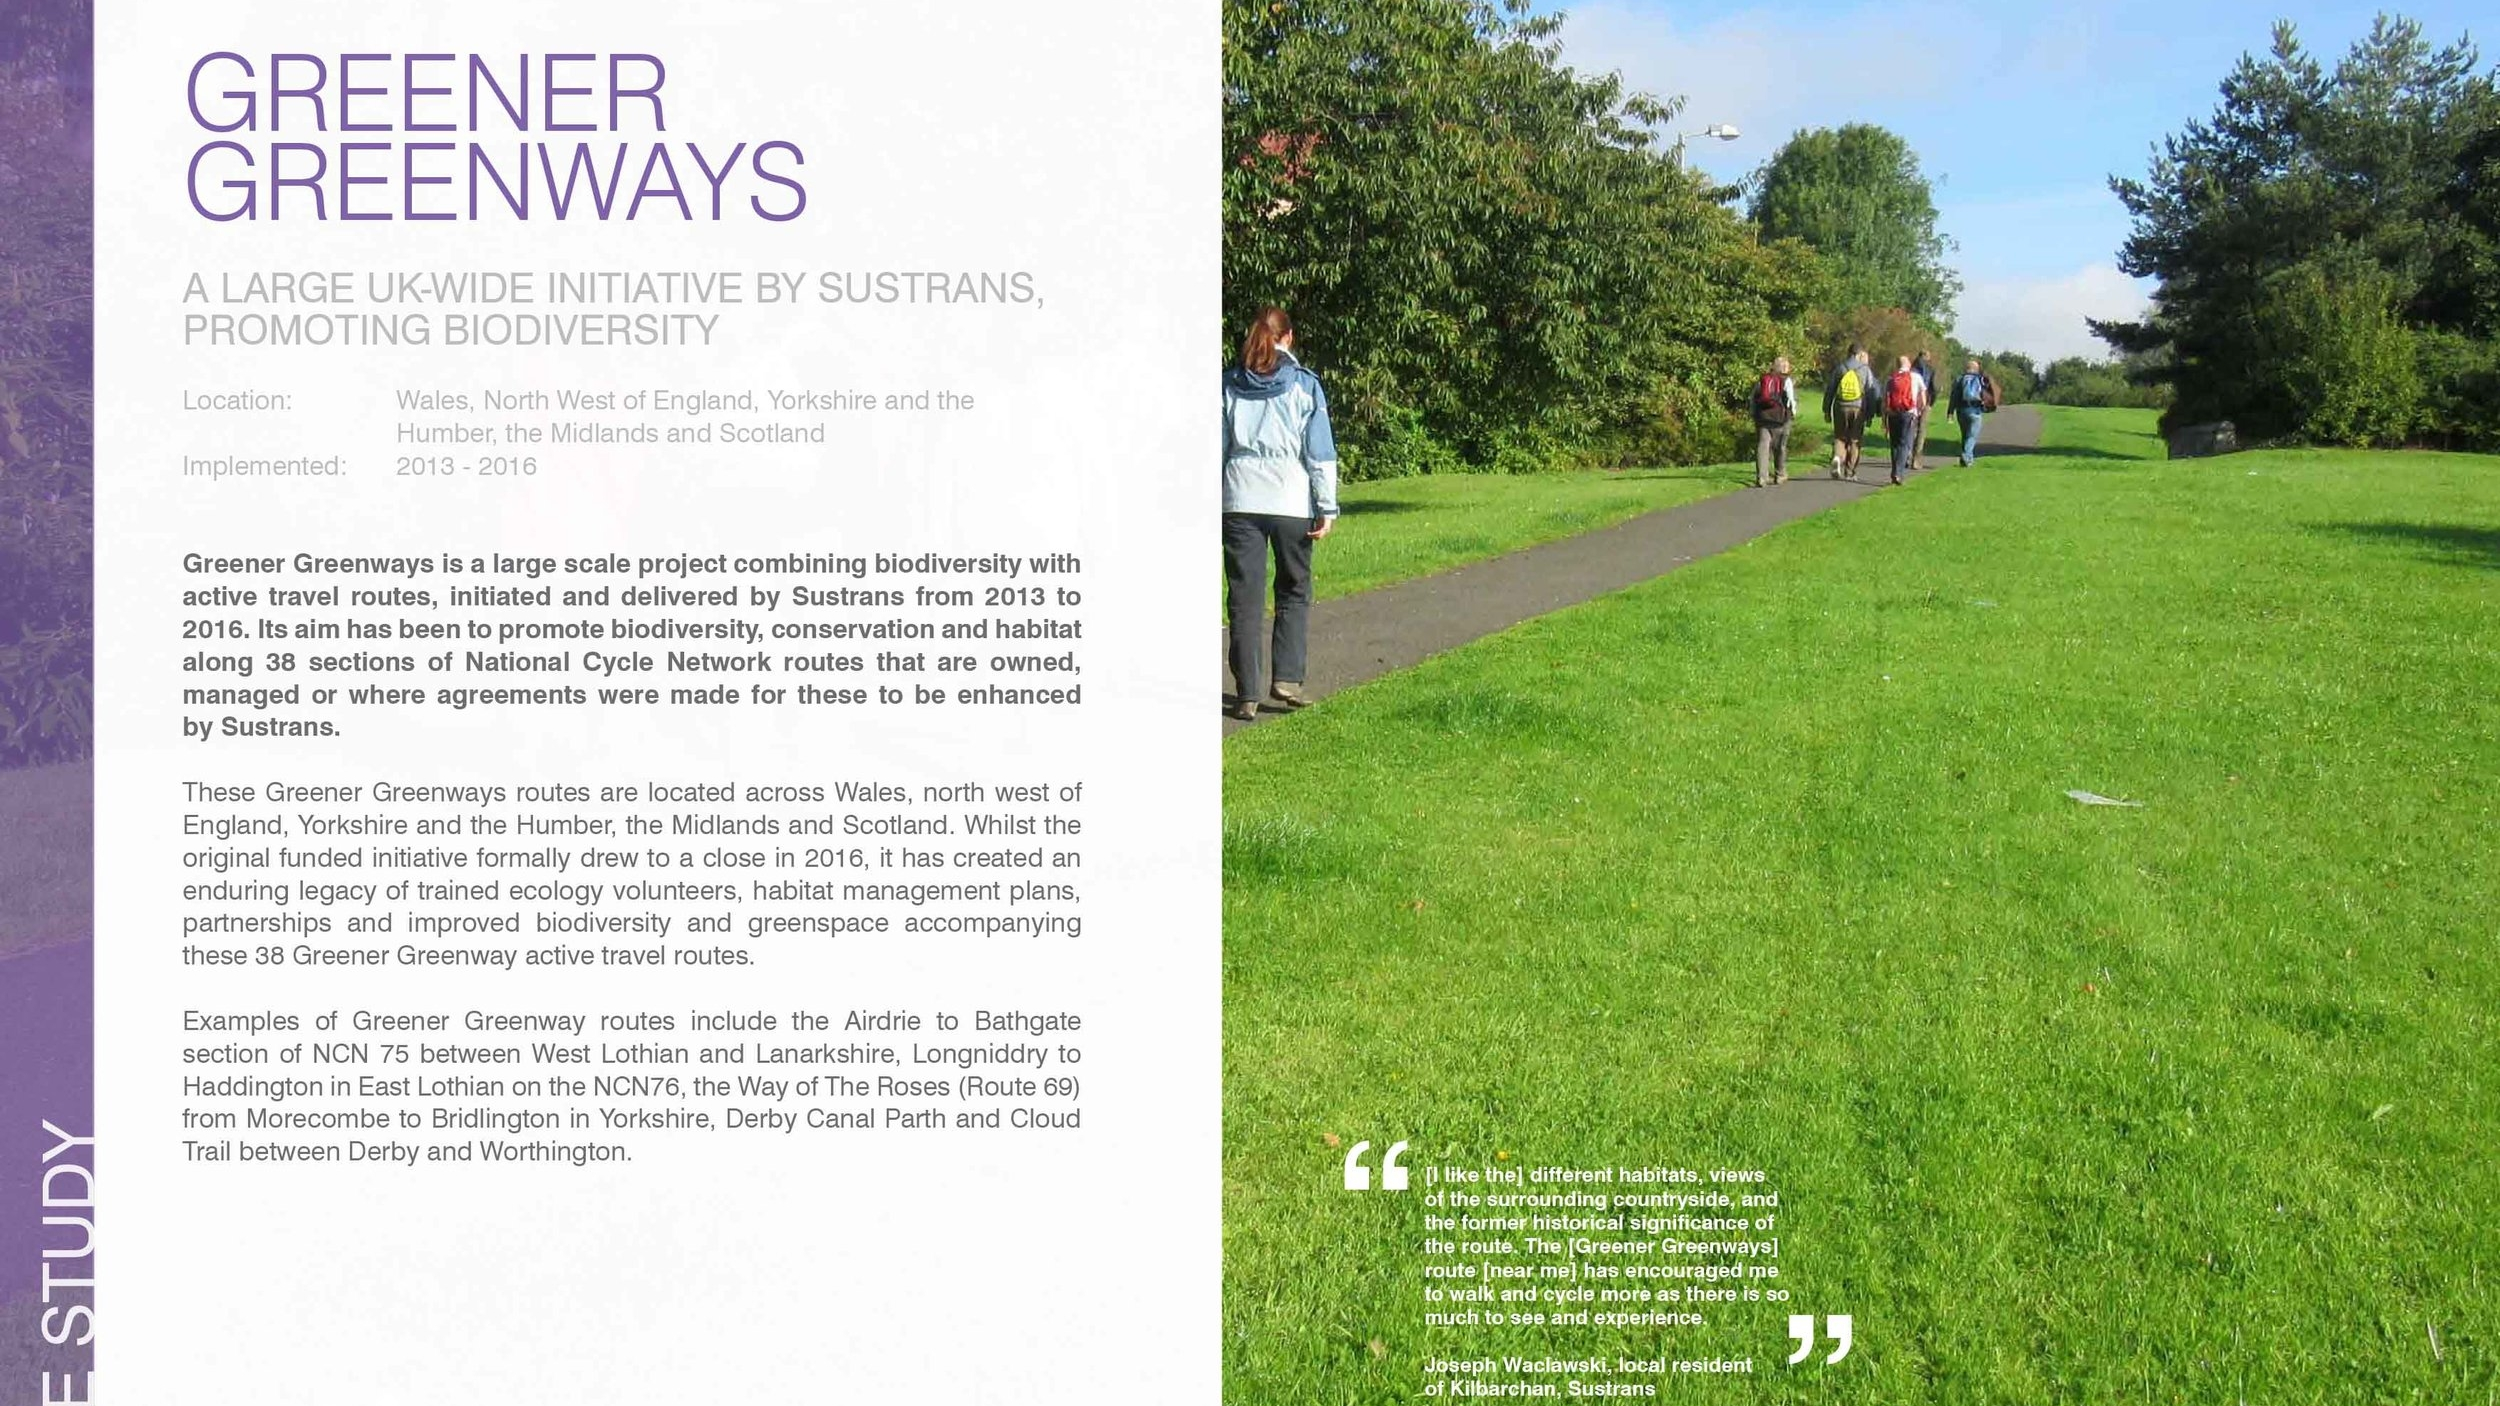 170504_HERE+NOW_GreenActiveTravel_FinalCaseStudies_GreenerGreenways_lo res.jpg